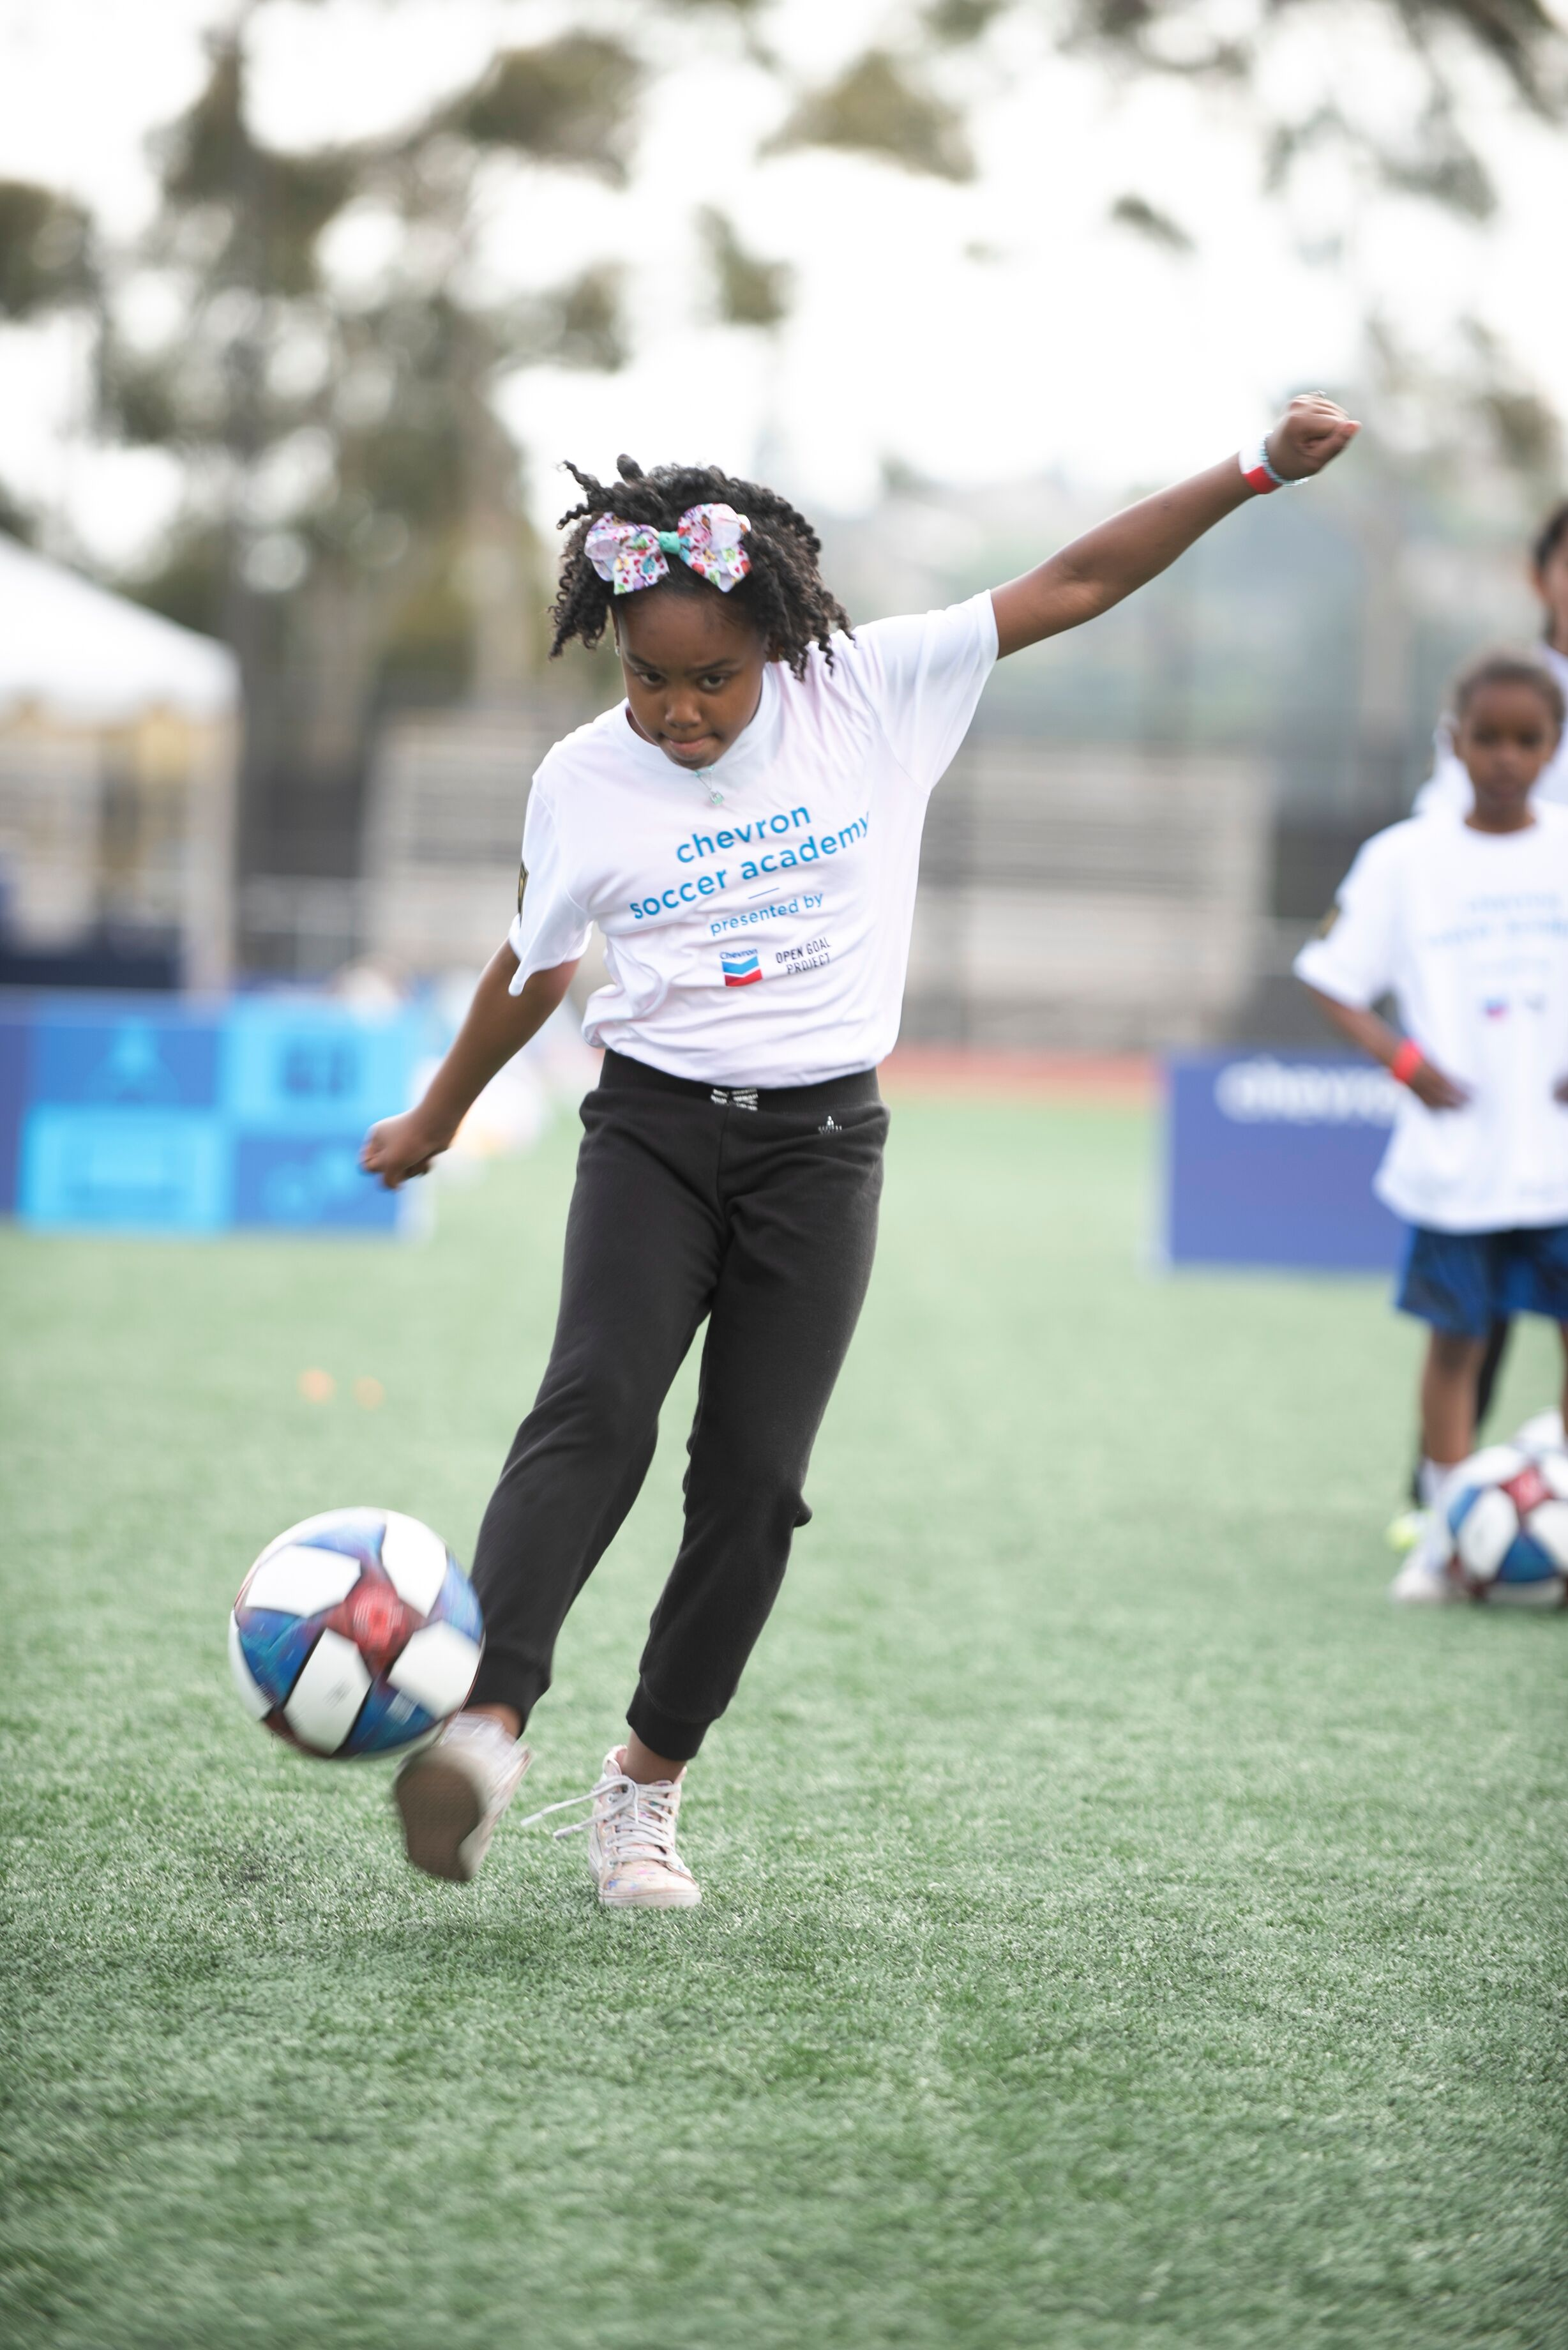 Chevron Soccer Academy — open goal project